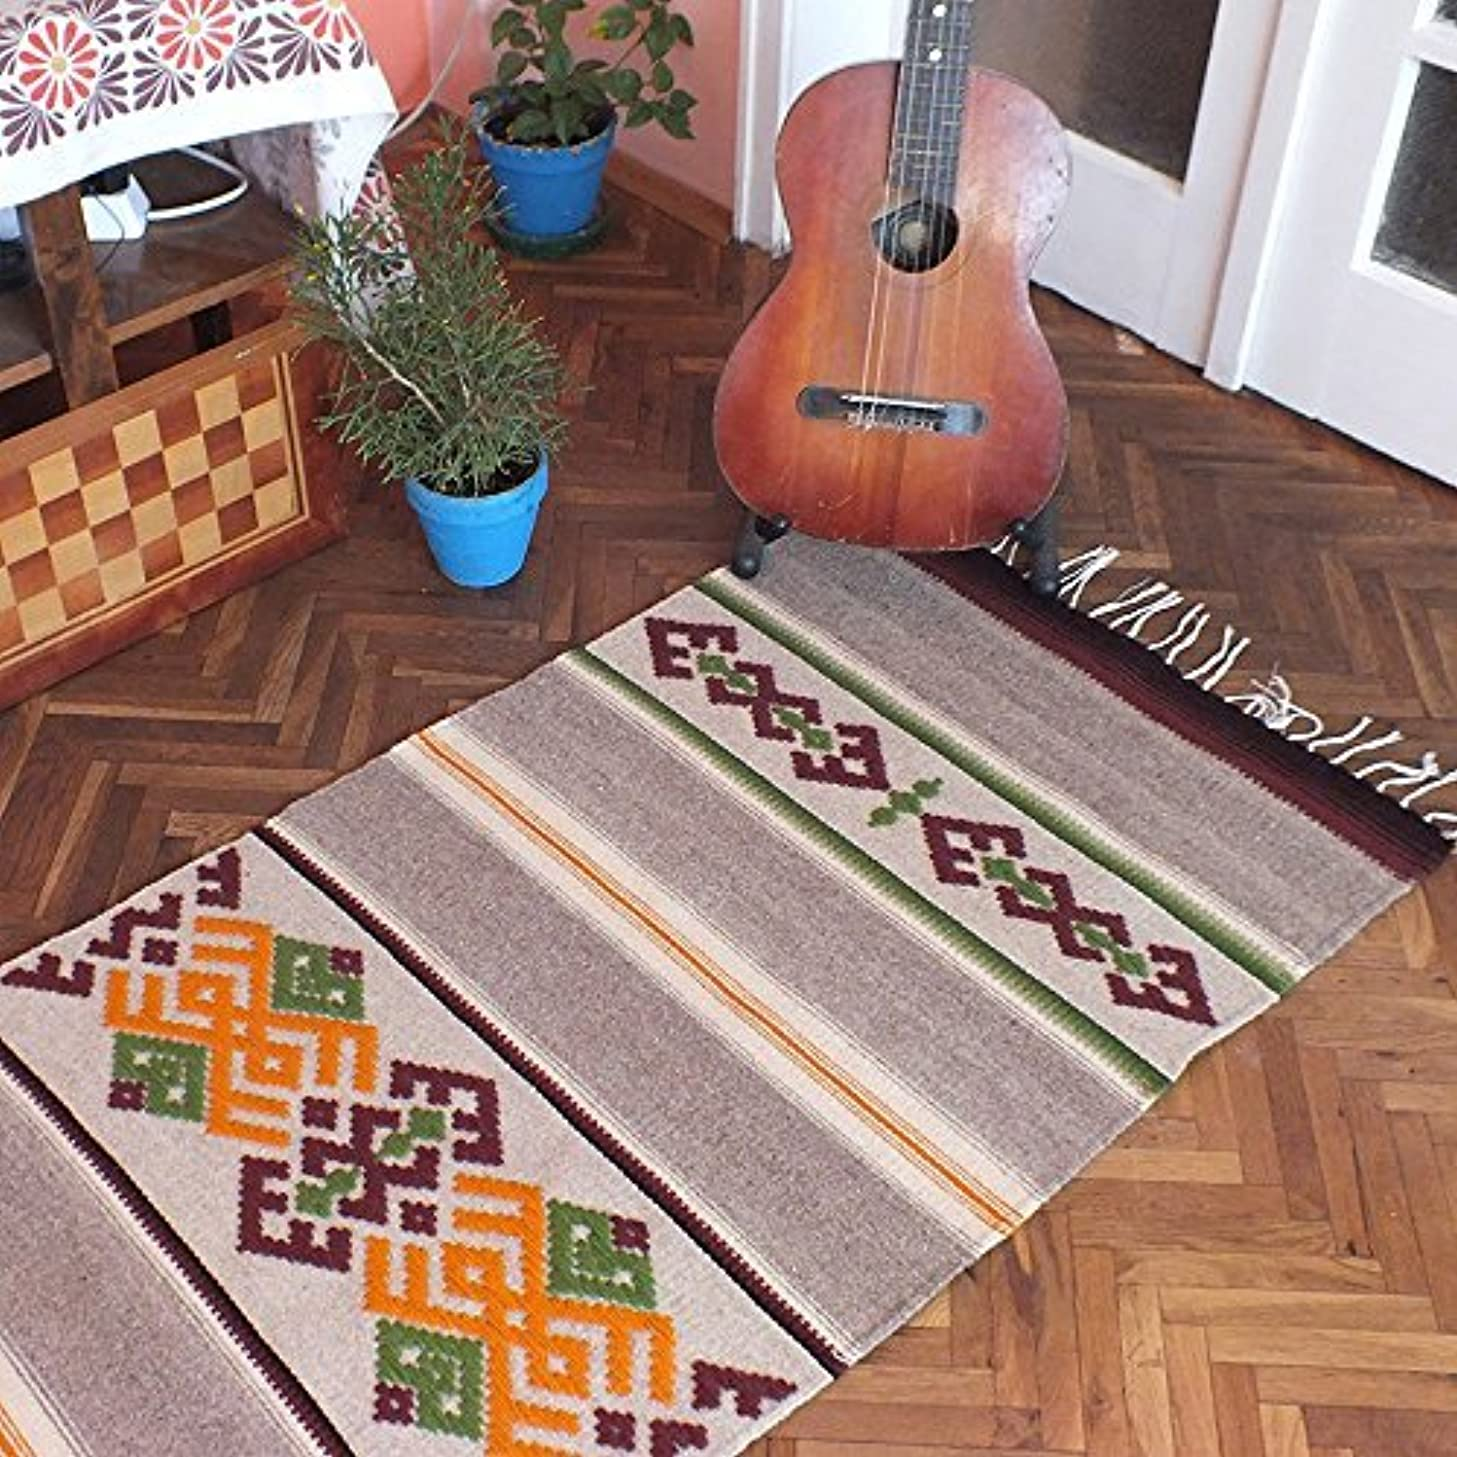 Stylish made to order handwoven wool rug in gray, brown, white and orange